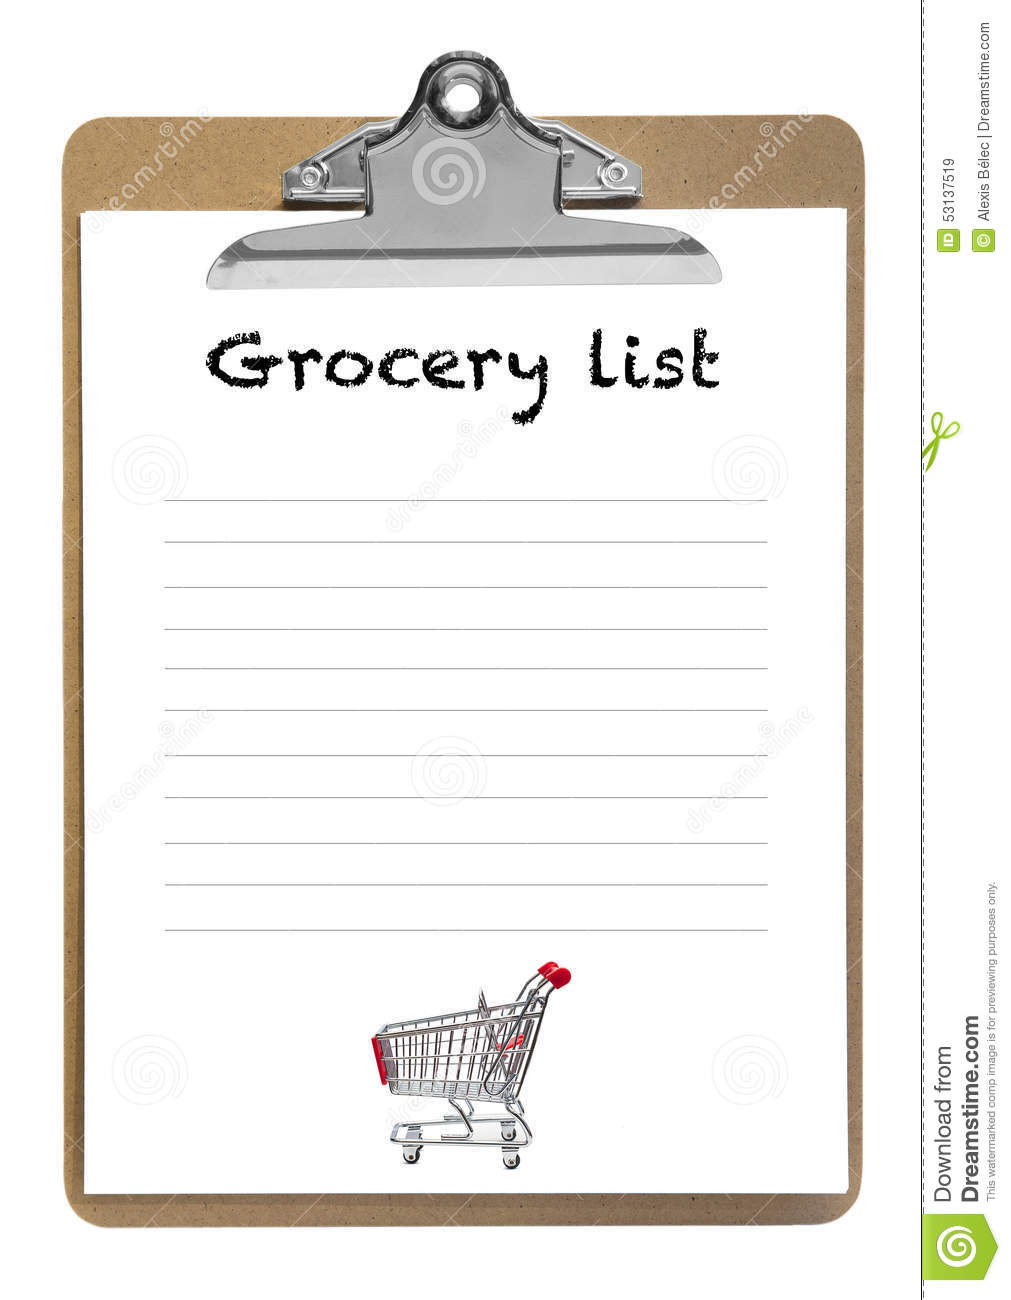 Groceries List Clip Art grocery list stock photo - image: 53137519